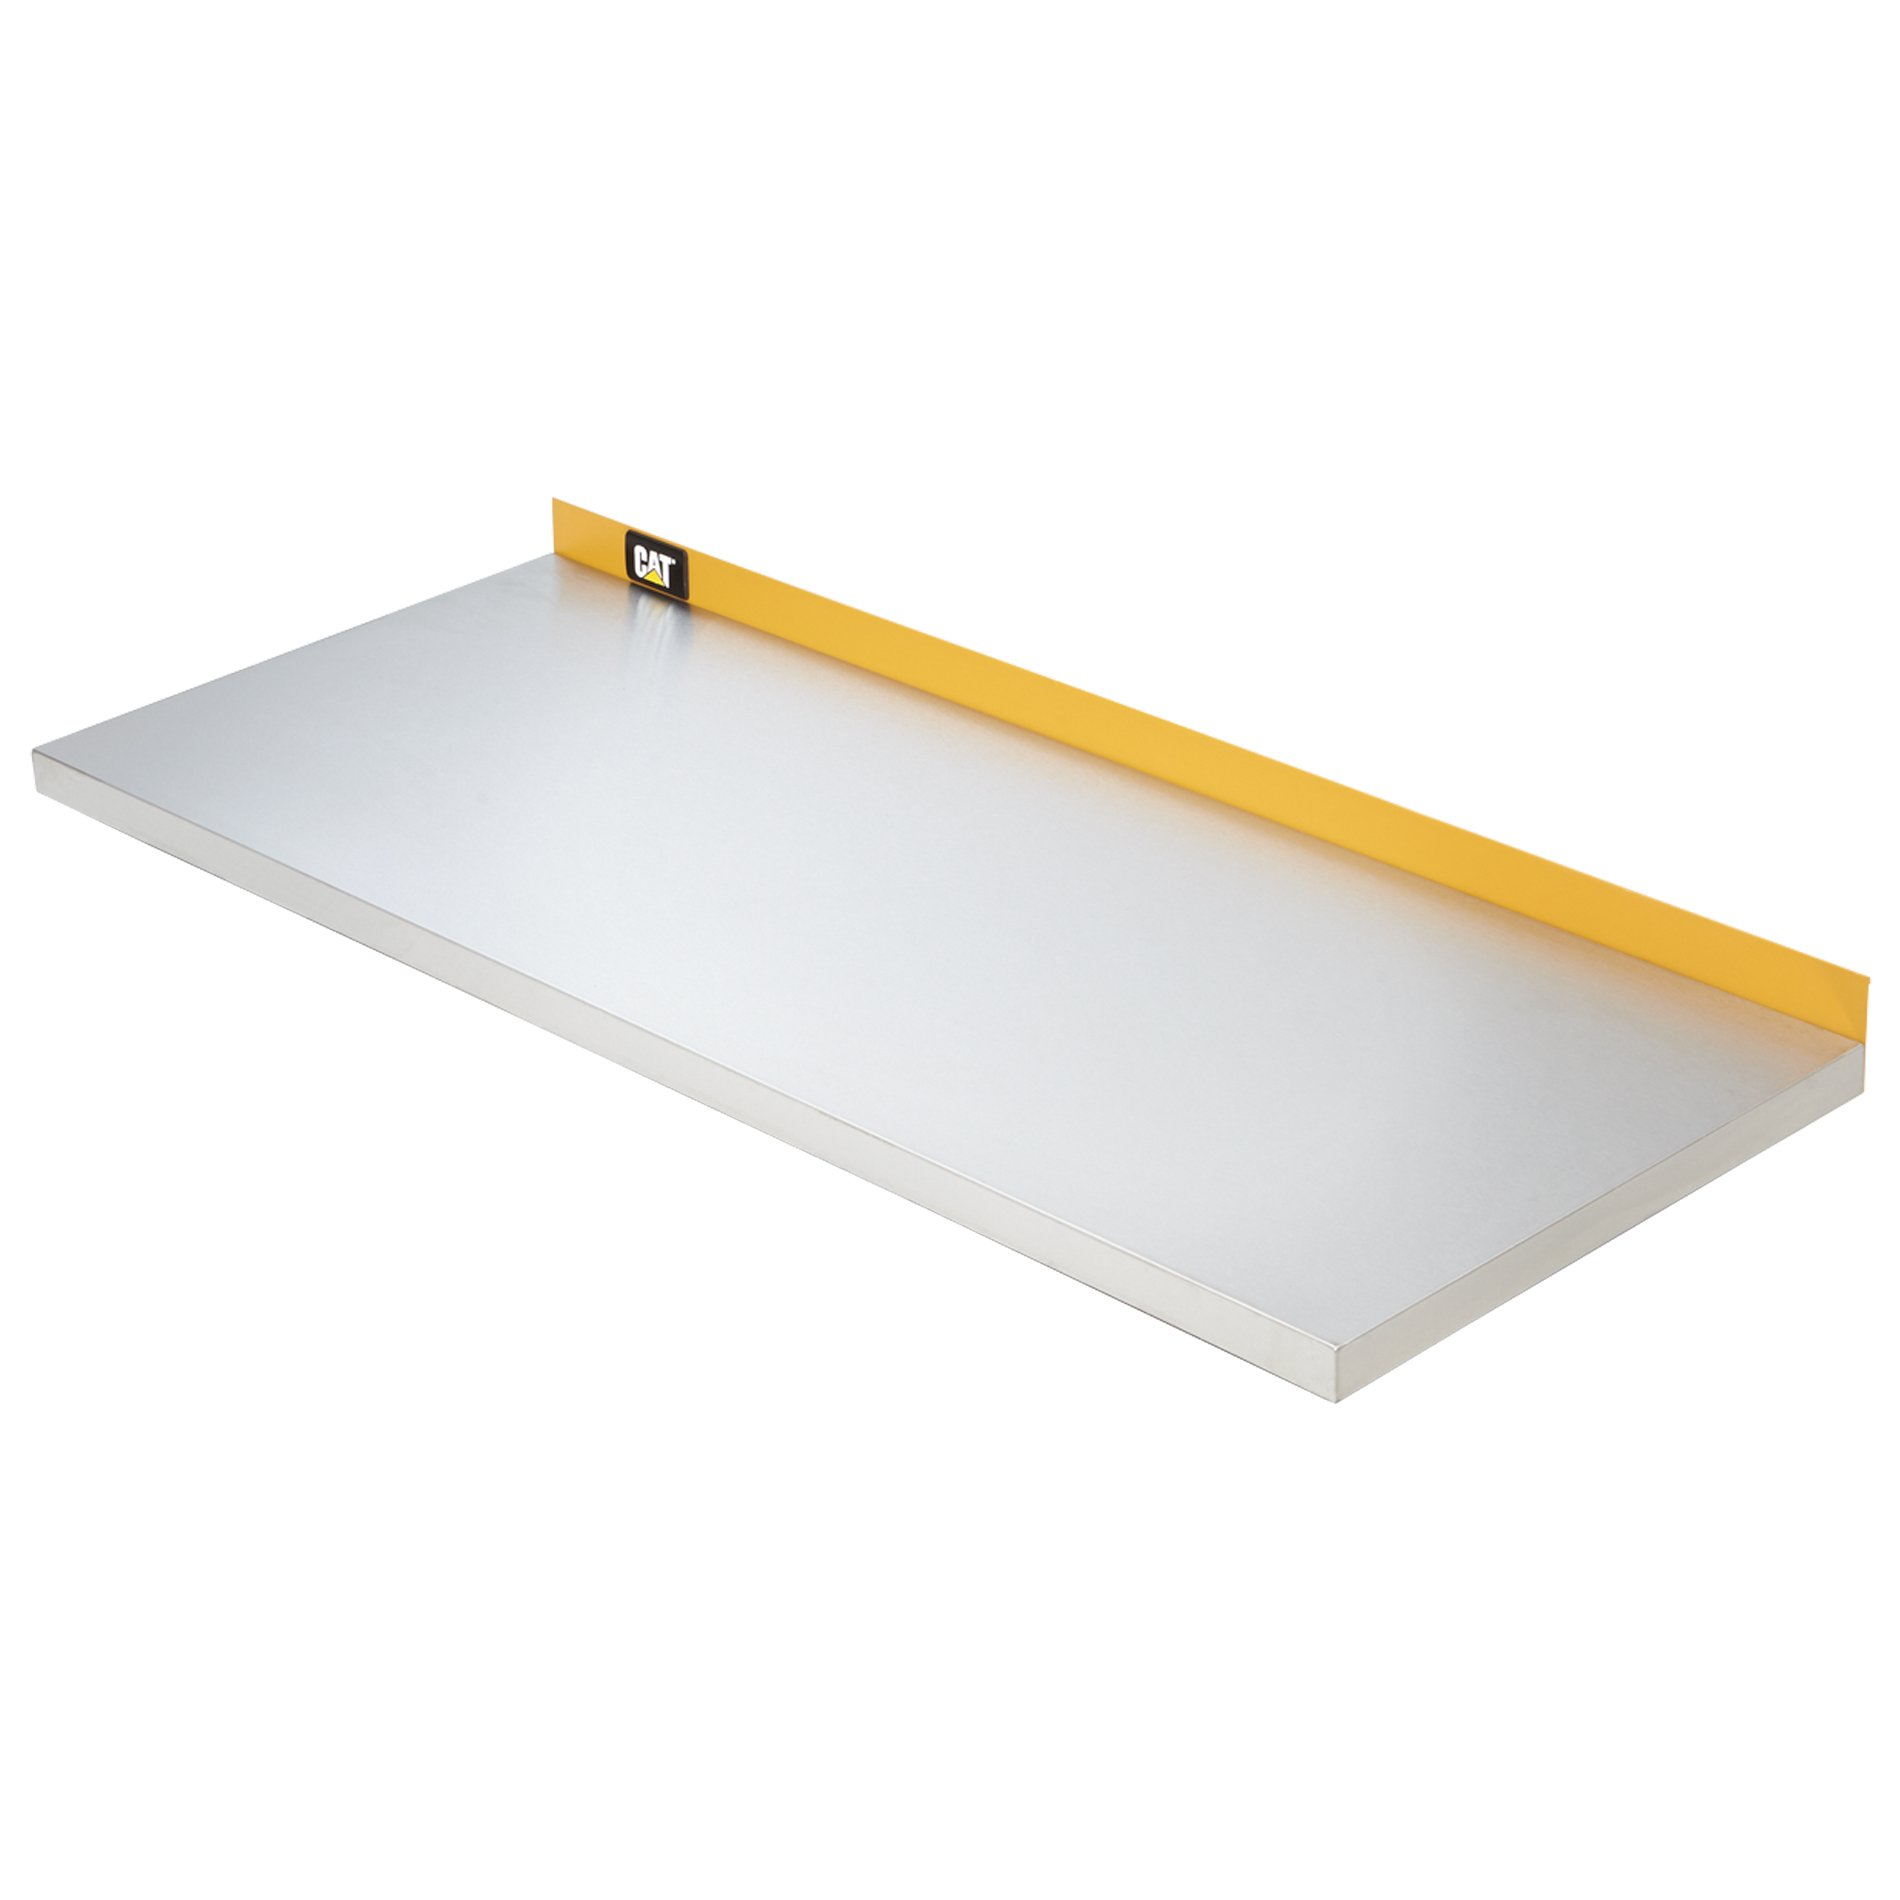 Cat 54'' Stainless Steel Work Surface - Designed, Engineered and Assembled in the USA by Cat Tool Storage